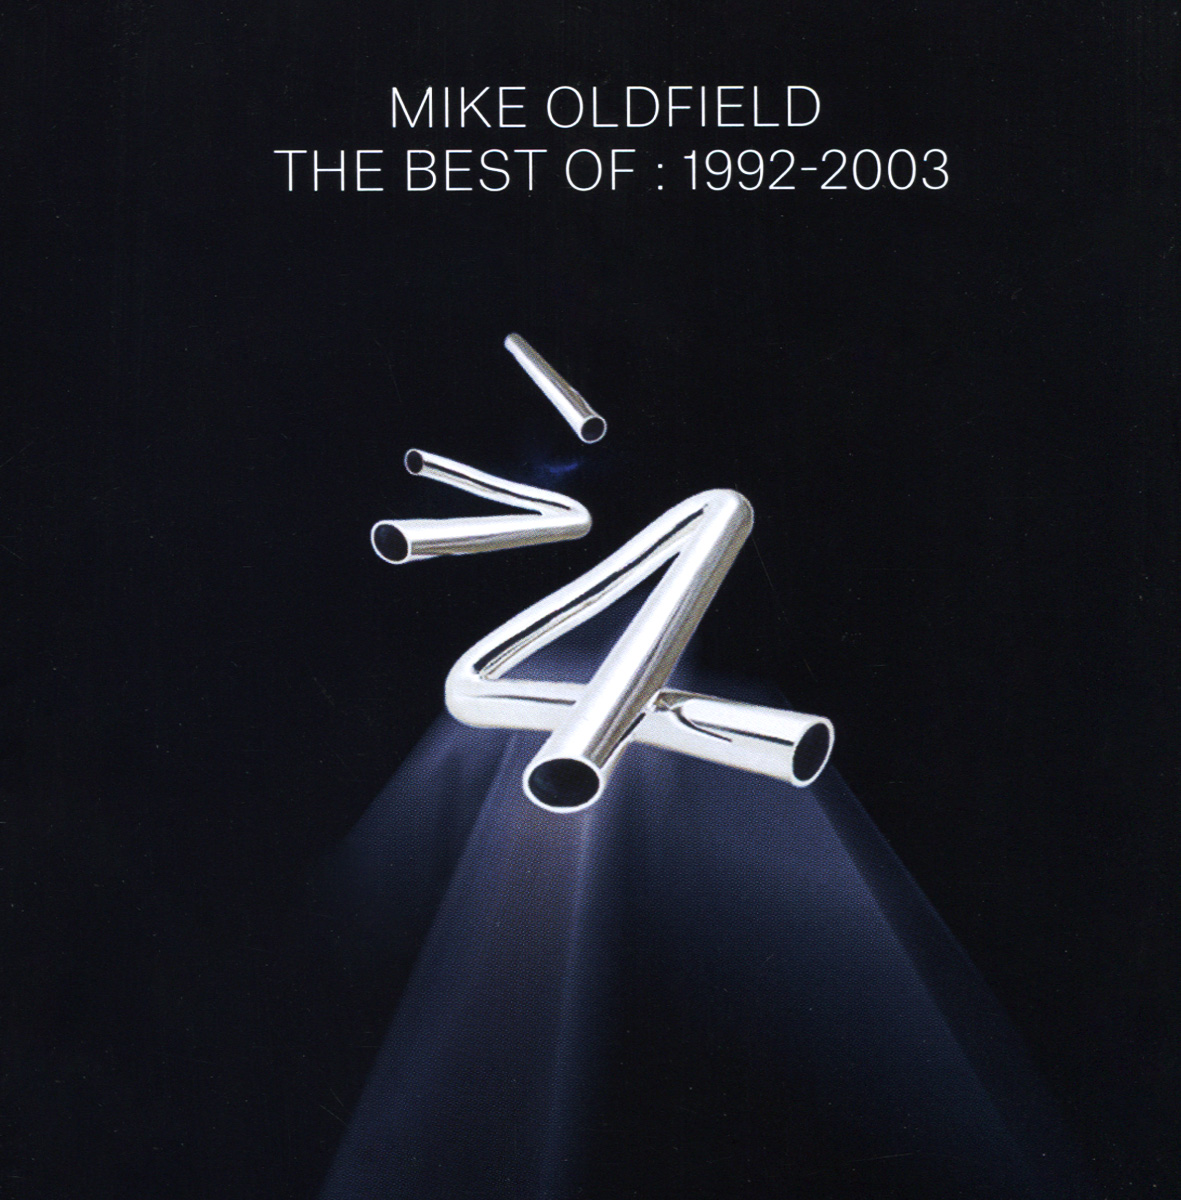 Майк Олдфилд Mike Oldfield. The Best Of: 1992-2003 (2 CD) майк олдфилд mike oldfield two sides the very best of mike oldfield 2 cd